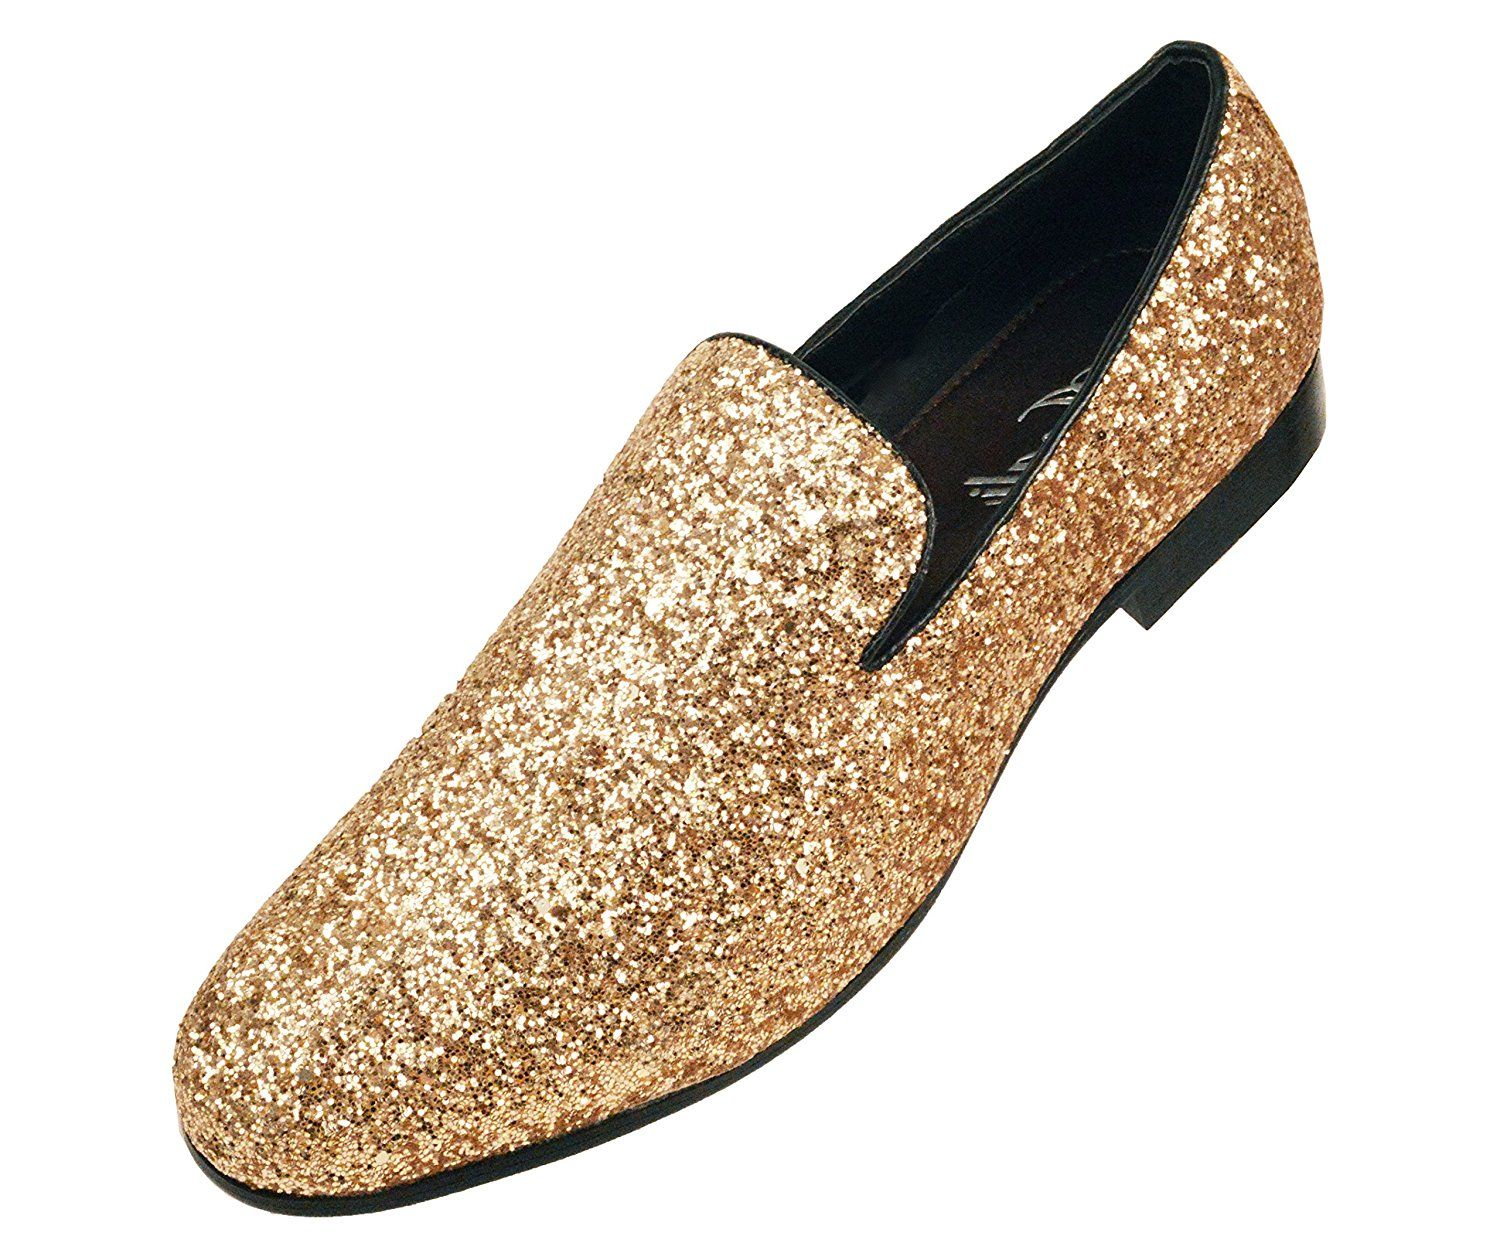 Men's Sparkling Glitter Luxury Slip On Loafers Smoking Slipper